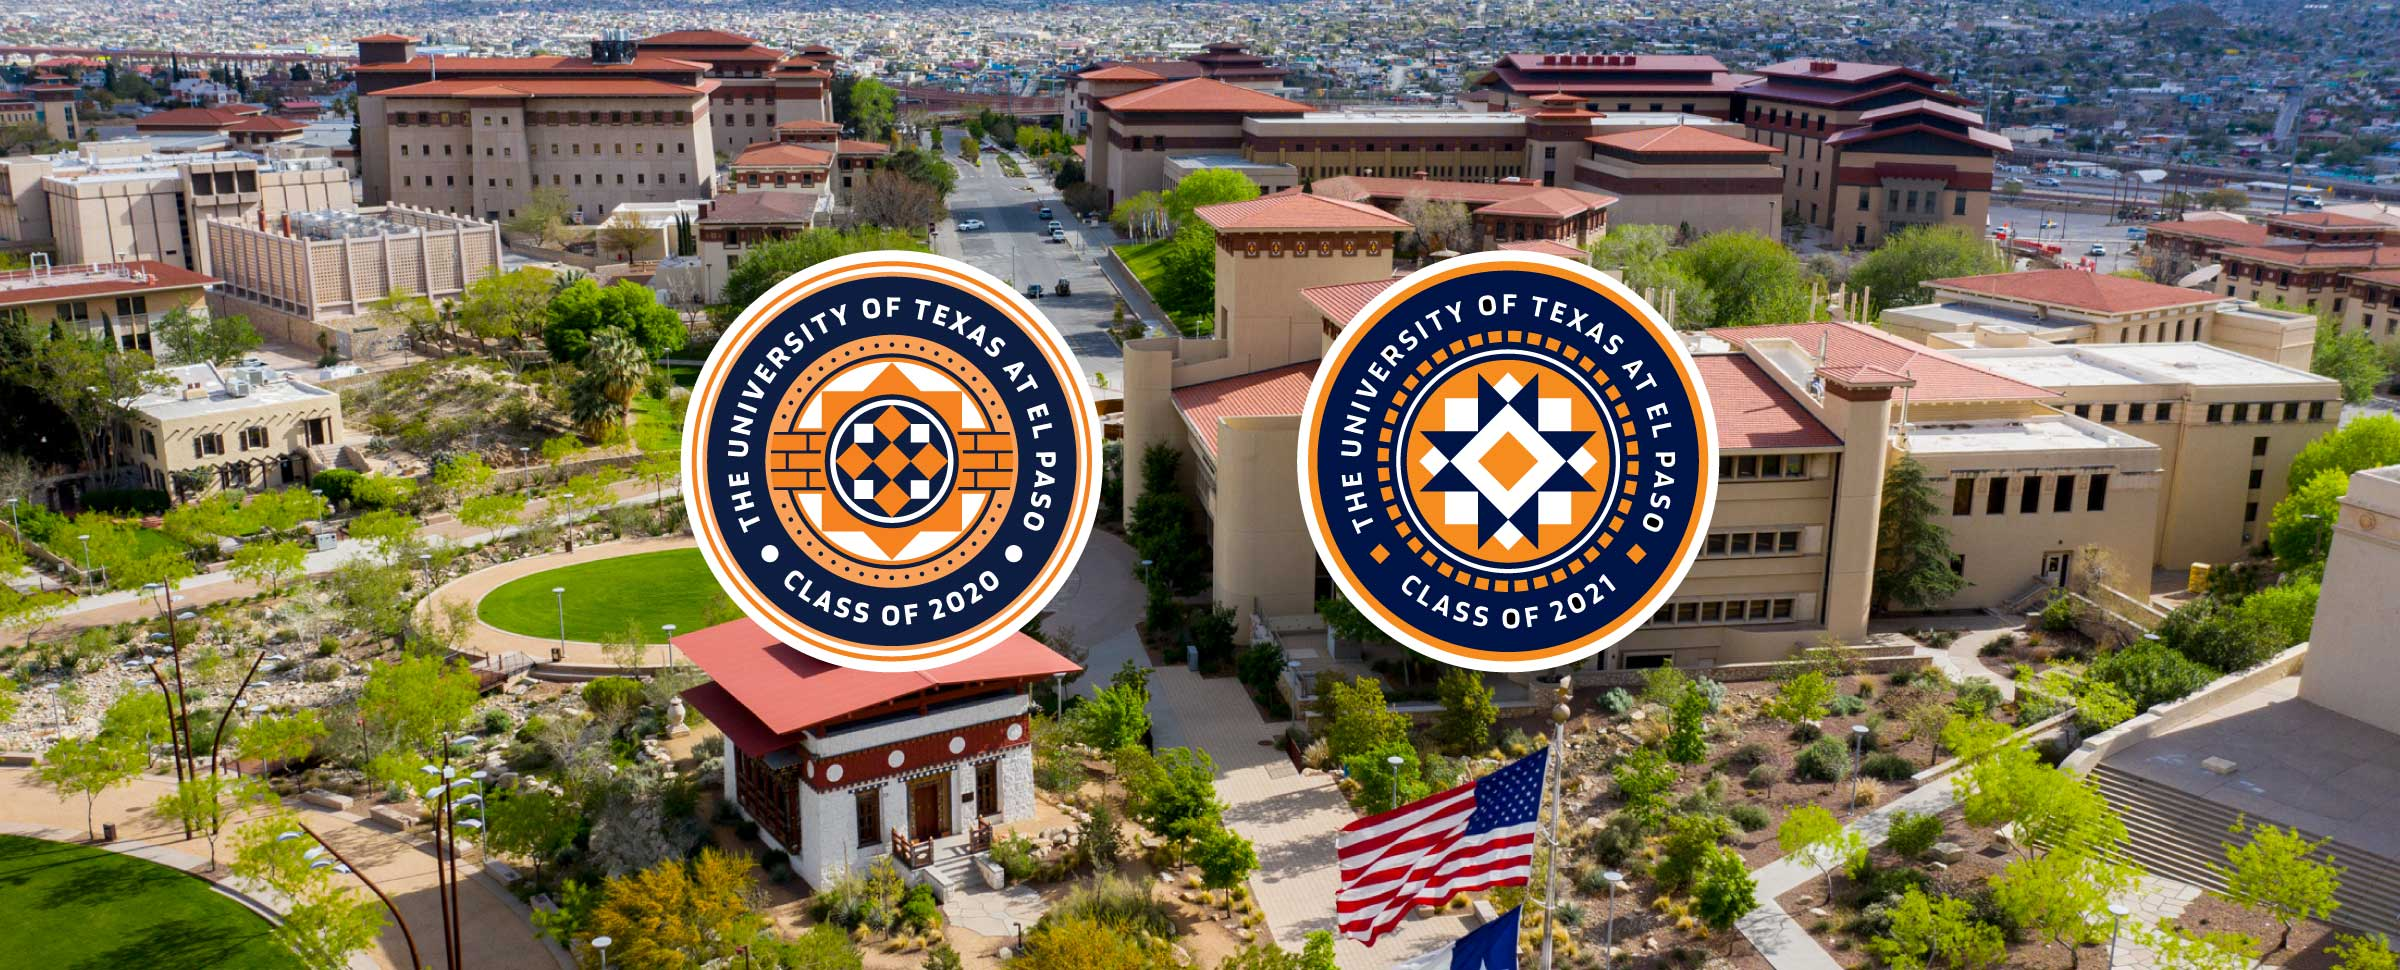 UTEP Announces Details for Commencement Ceremonies in May 2021